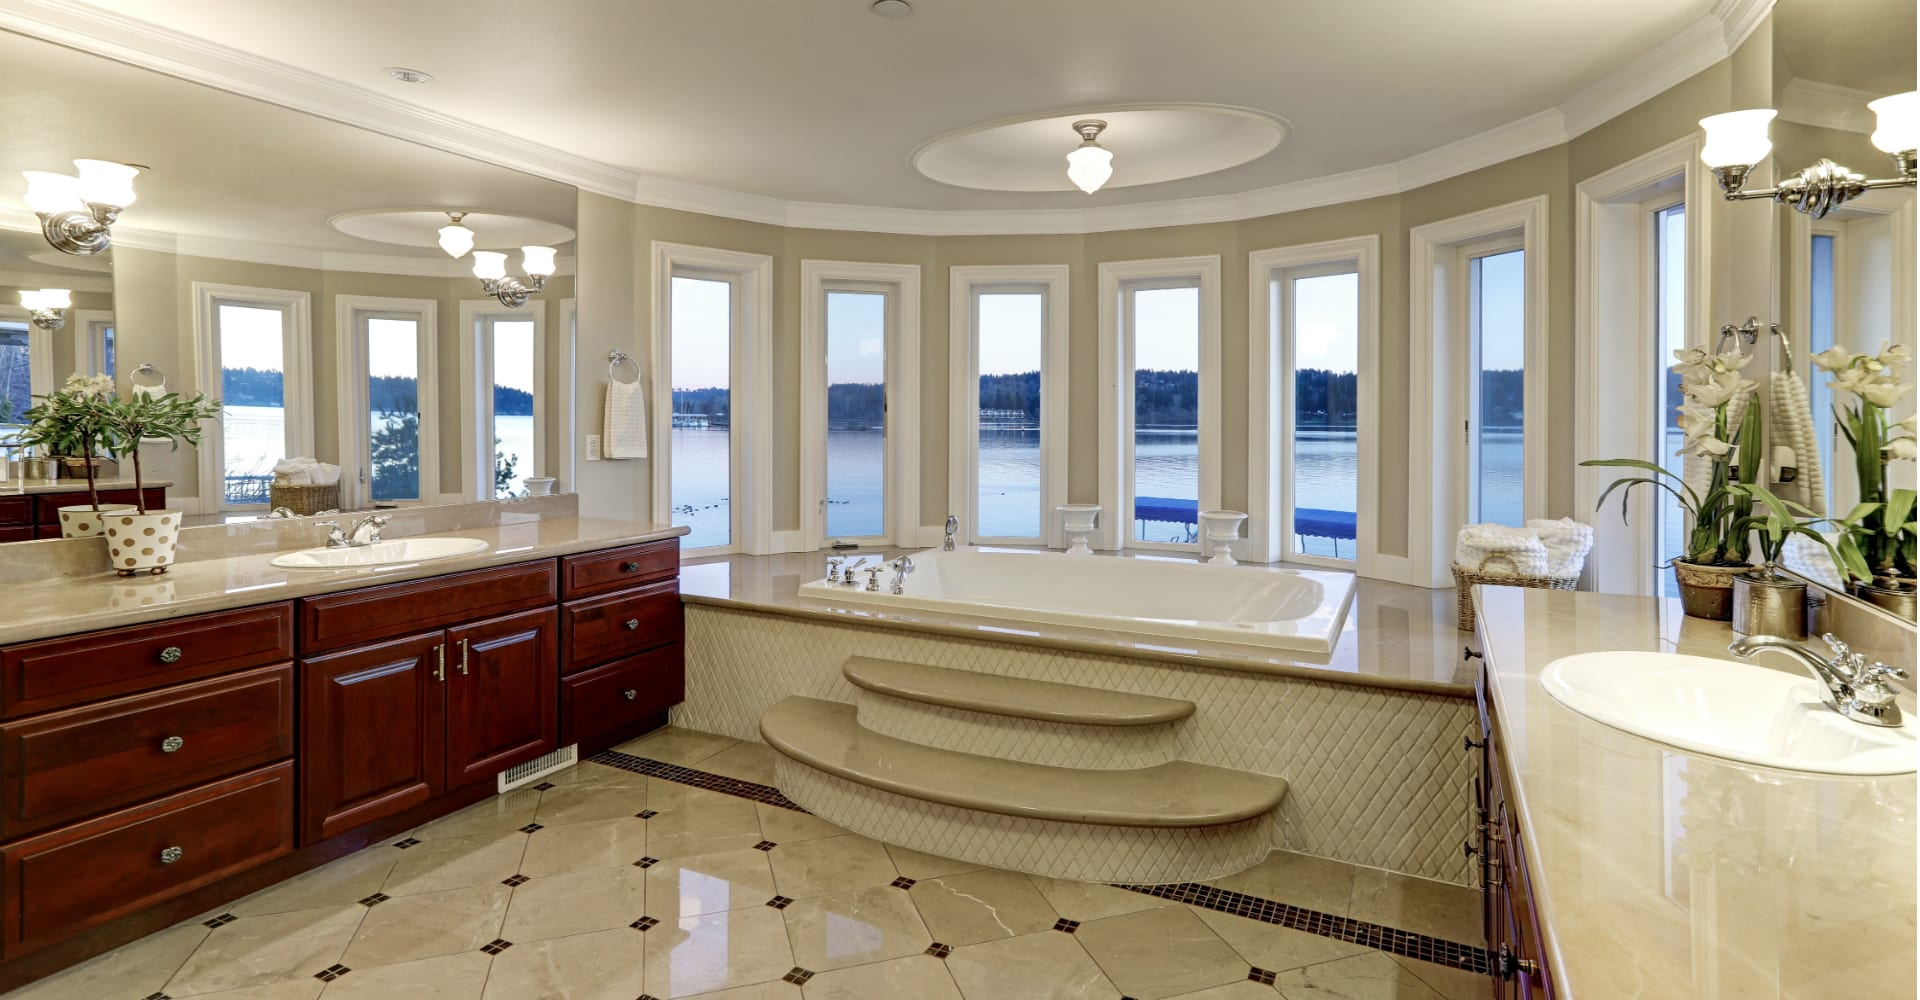 10 Tips for Hiring a Bathroom Remodeling Contractor